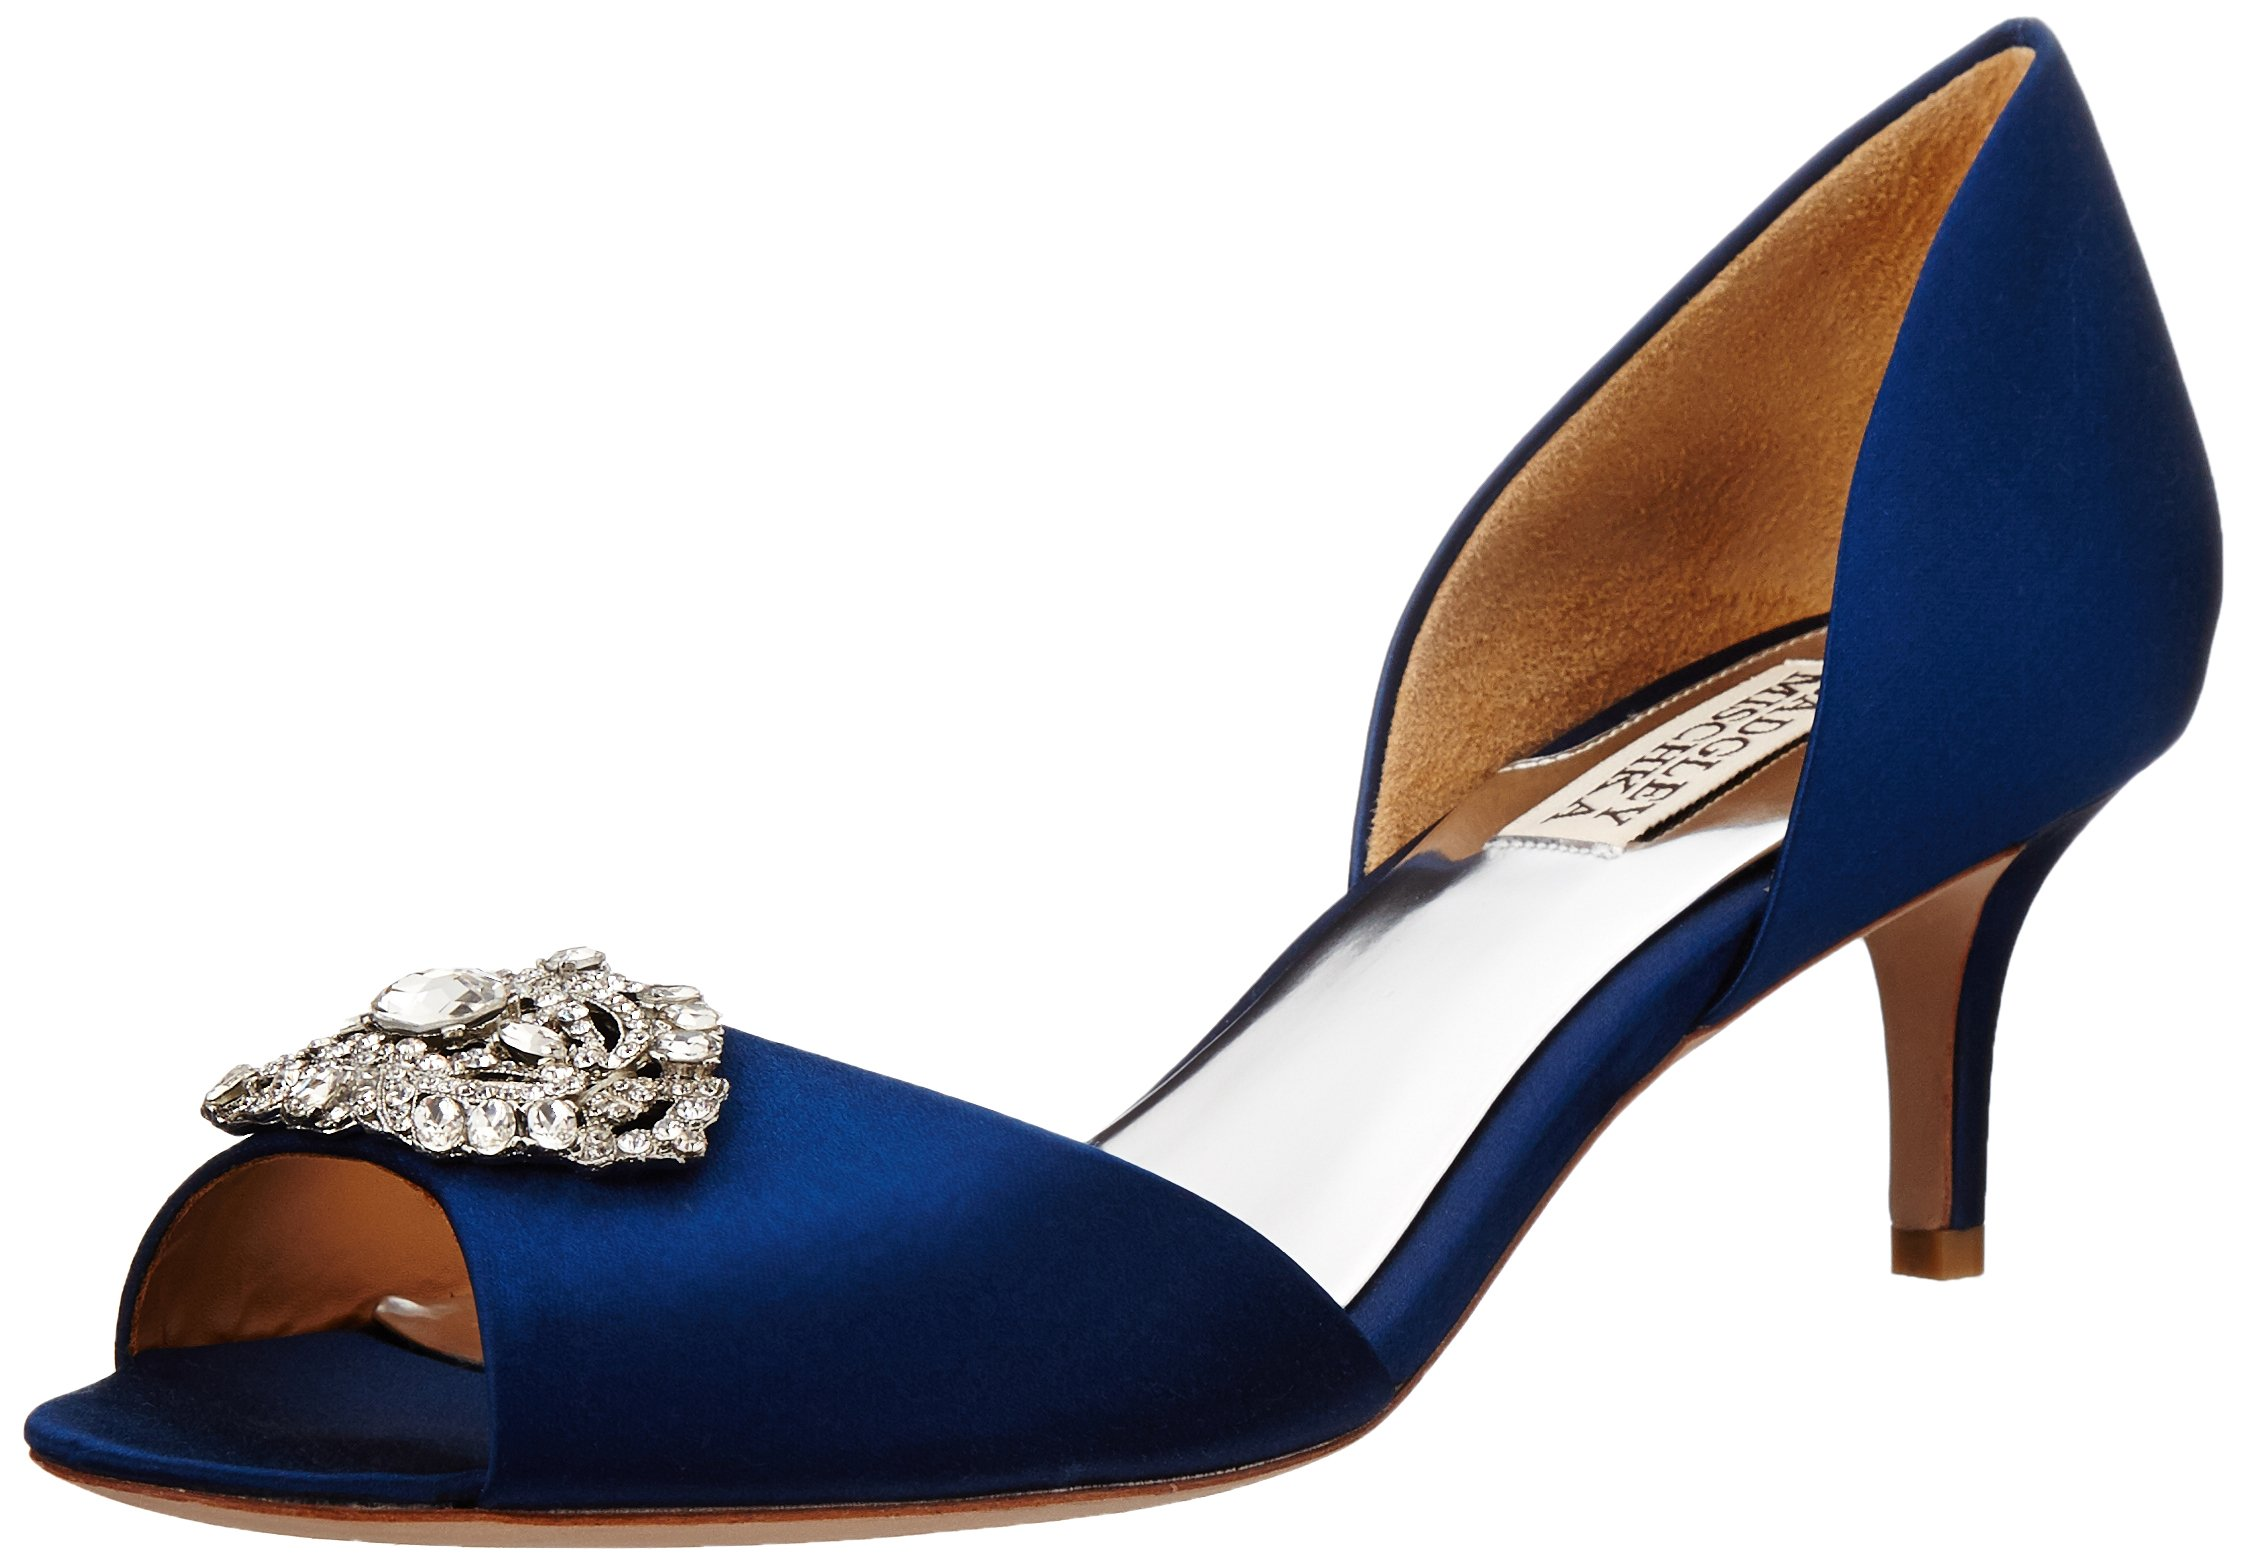 Badgley Mischka Women's Petrina D'Orsay Pump,Navy,6.5 M US